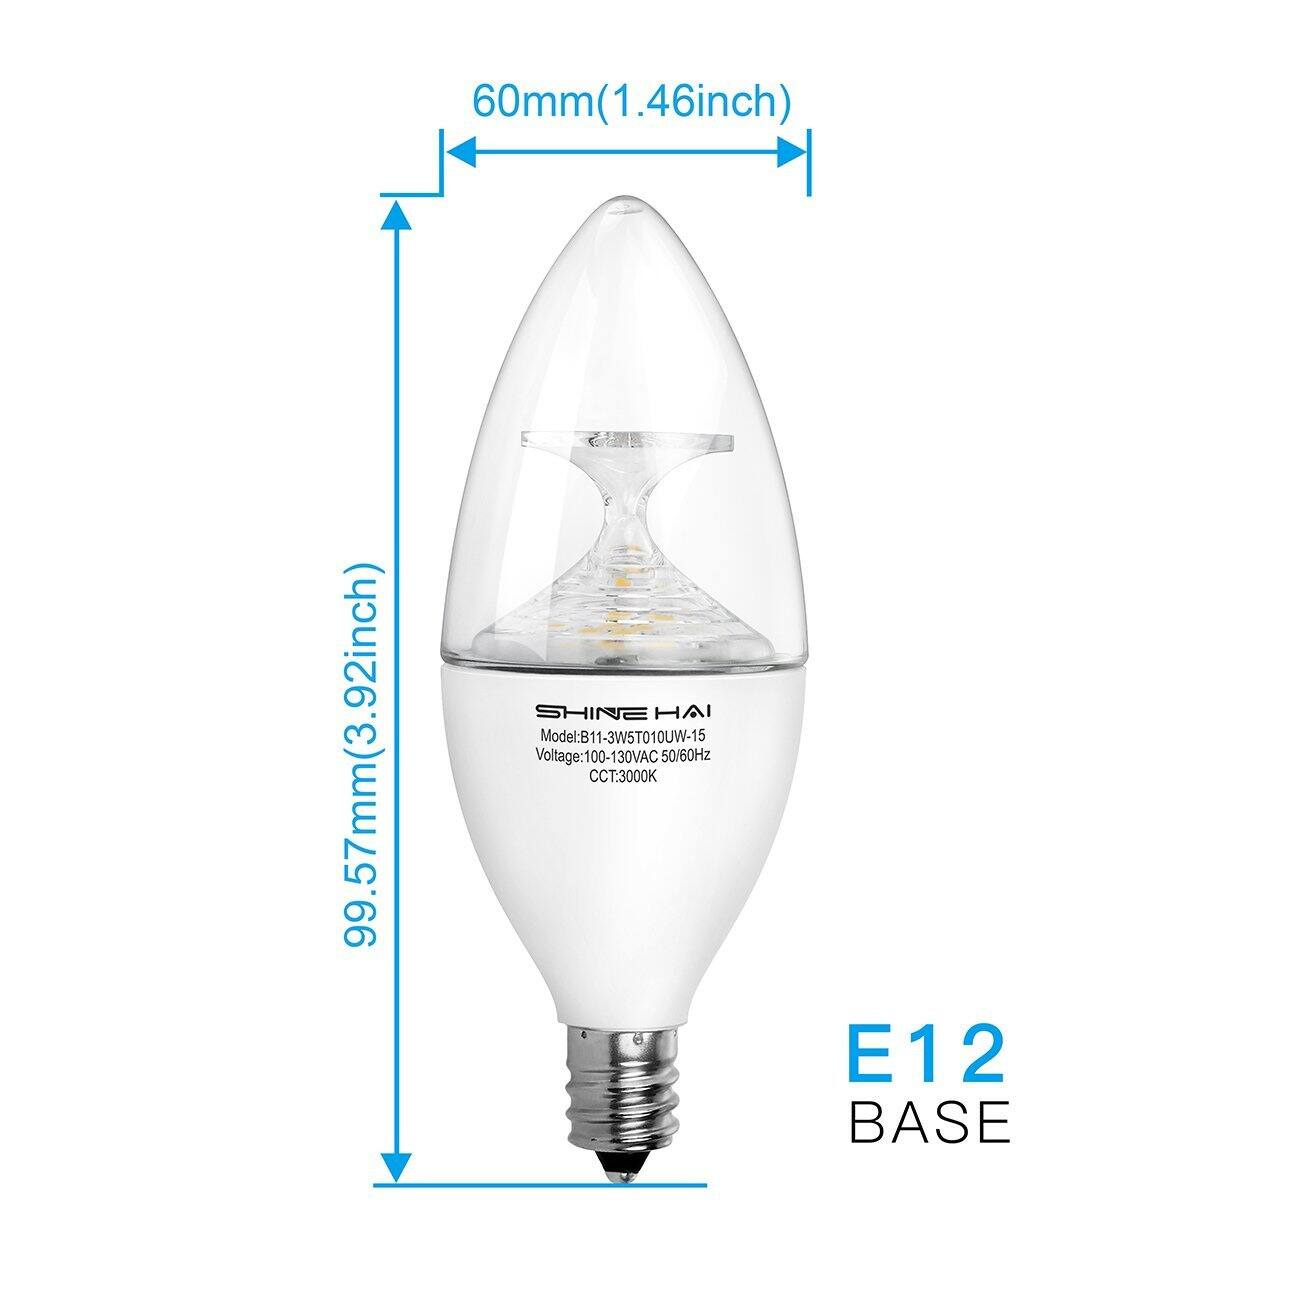 40W equivalent E12 Candelabra Base LED bulbs (12 for 12.99) $12.99